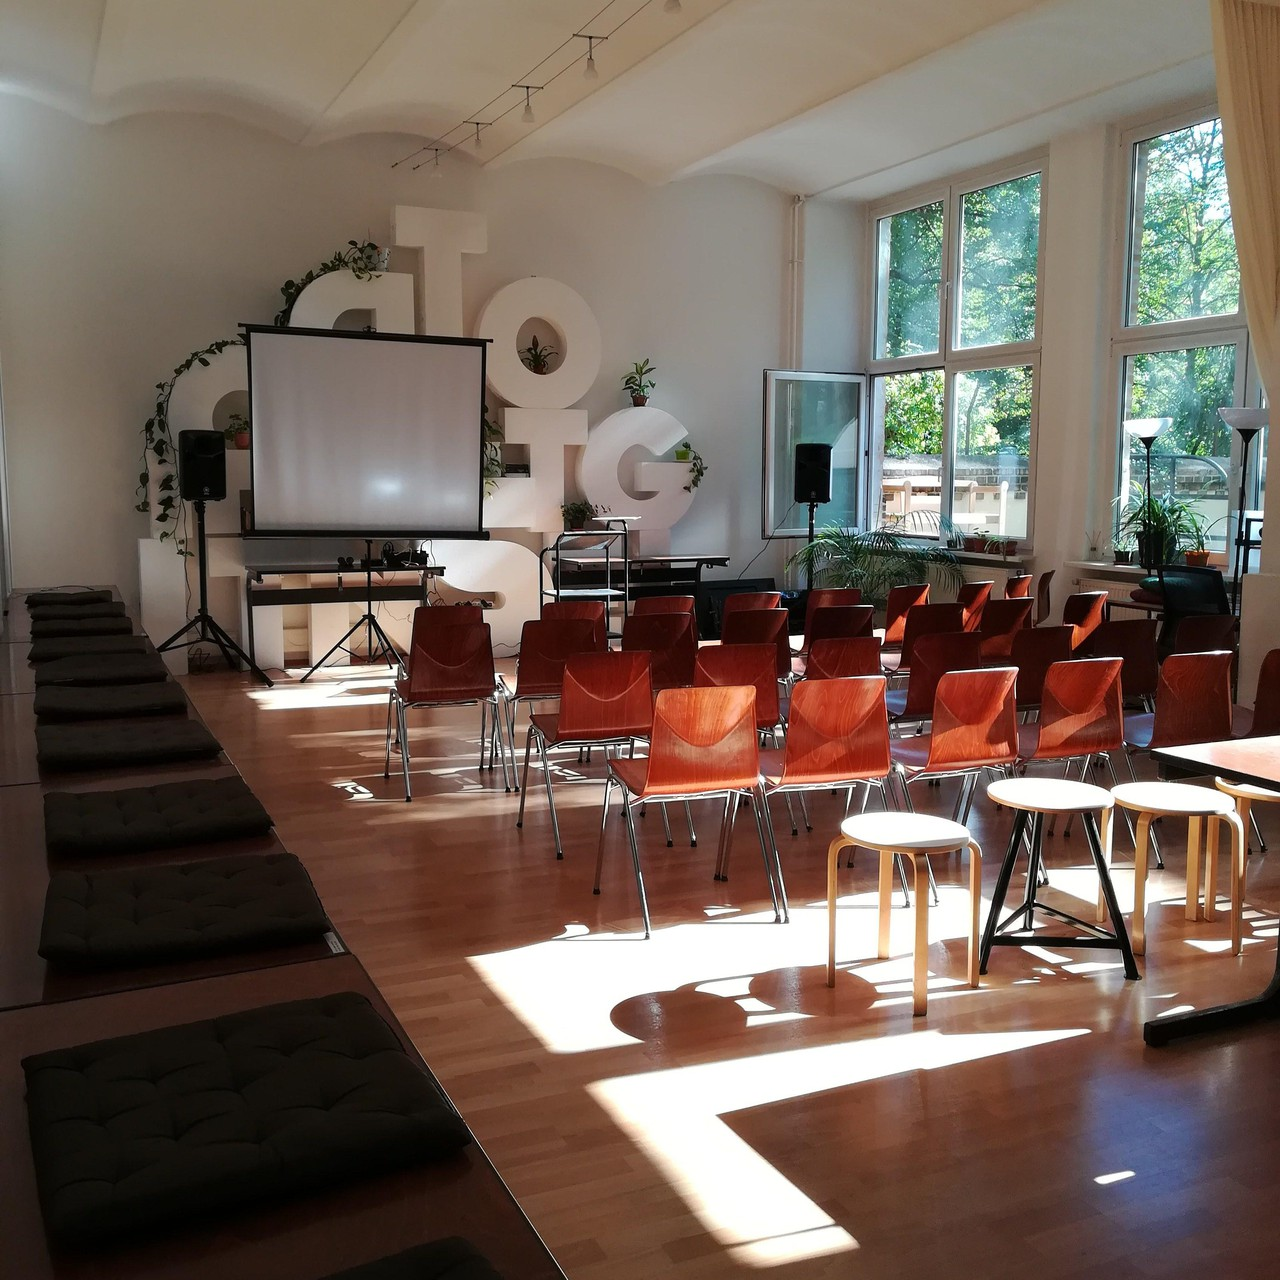 Berlin training rooms Espace de Coworking tuesdaycoworking - Your Event Space for Hire image 6